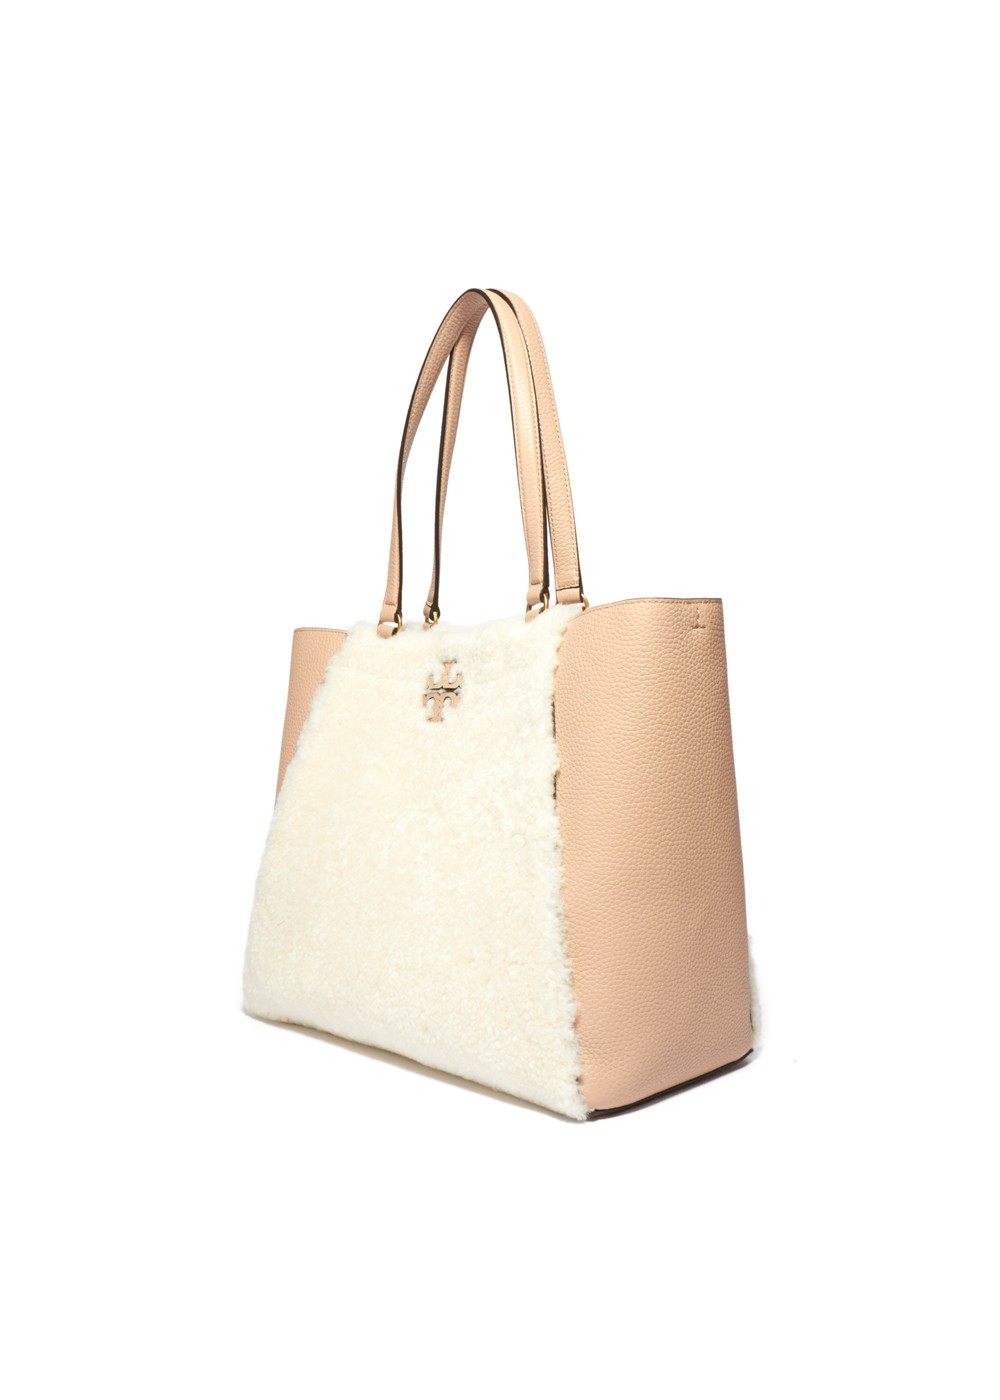 【最大48%OFF】MCGRAW SHEARLING CARRYALL|IVORY/DEVON SAND|トートバッグ|Tory Burch